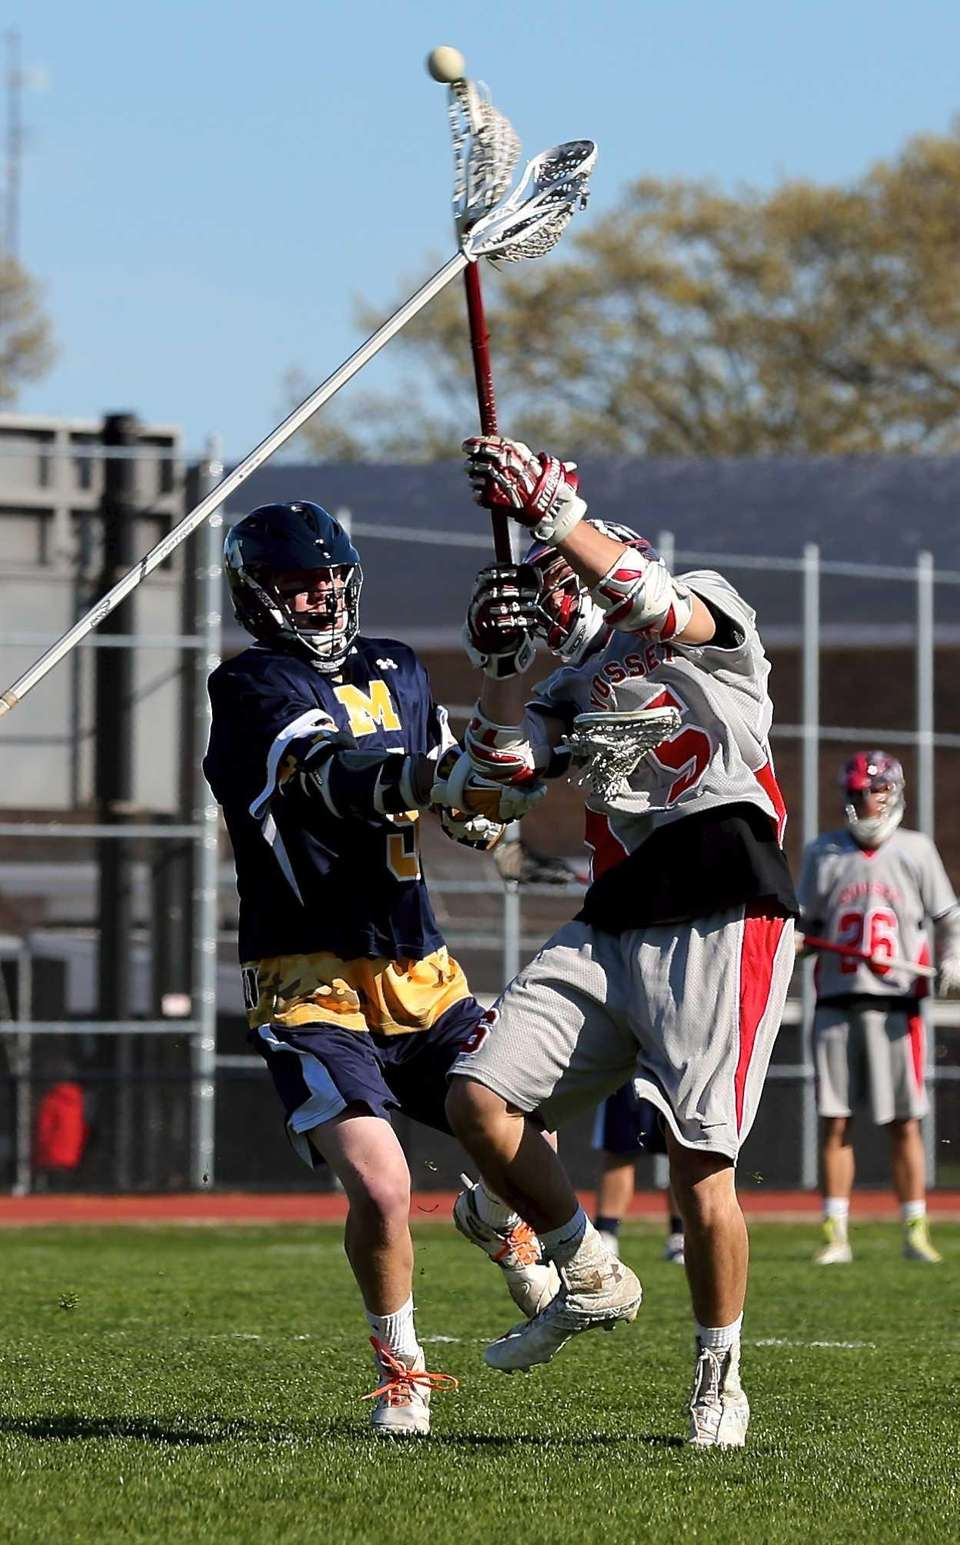 Syosset's Alex Hatzopoulos scores during a game against